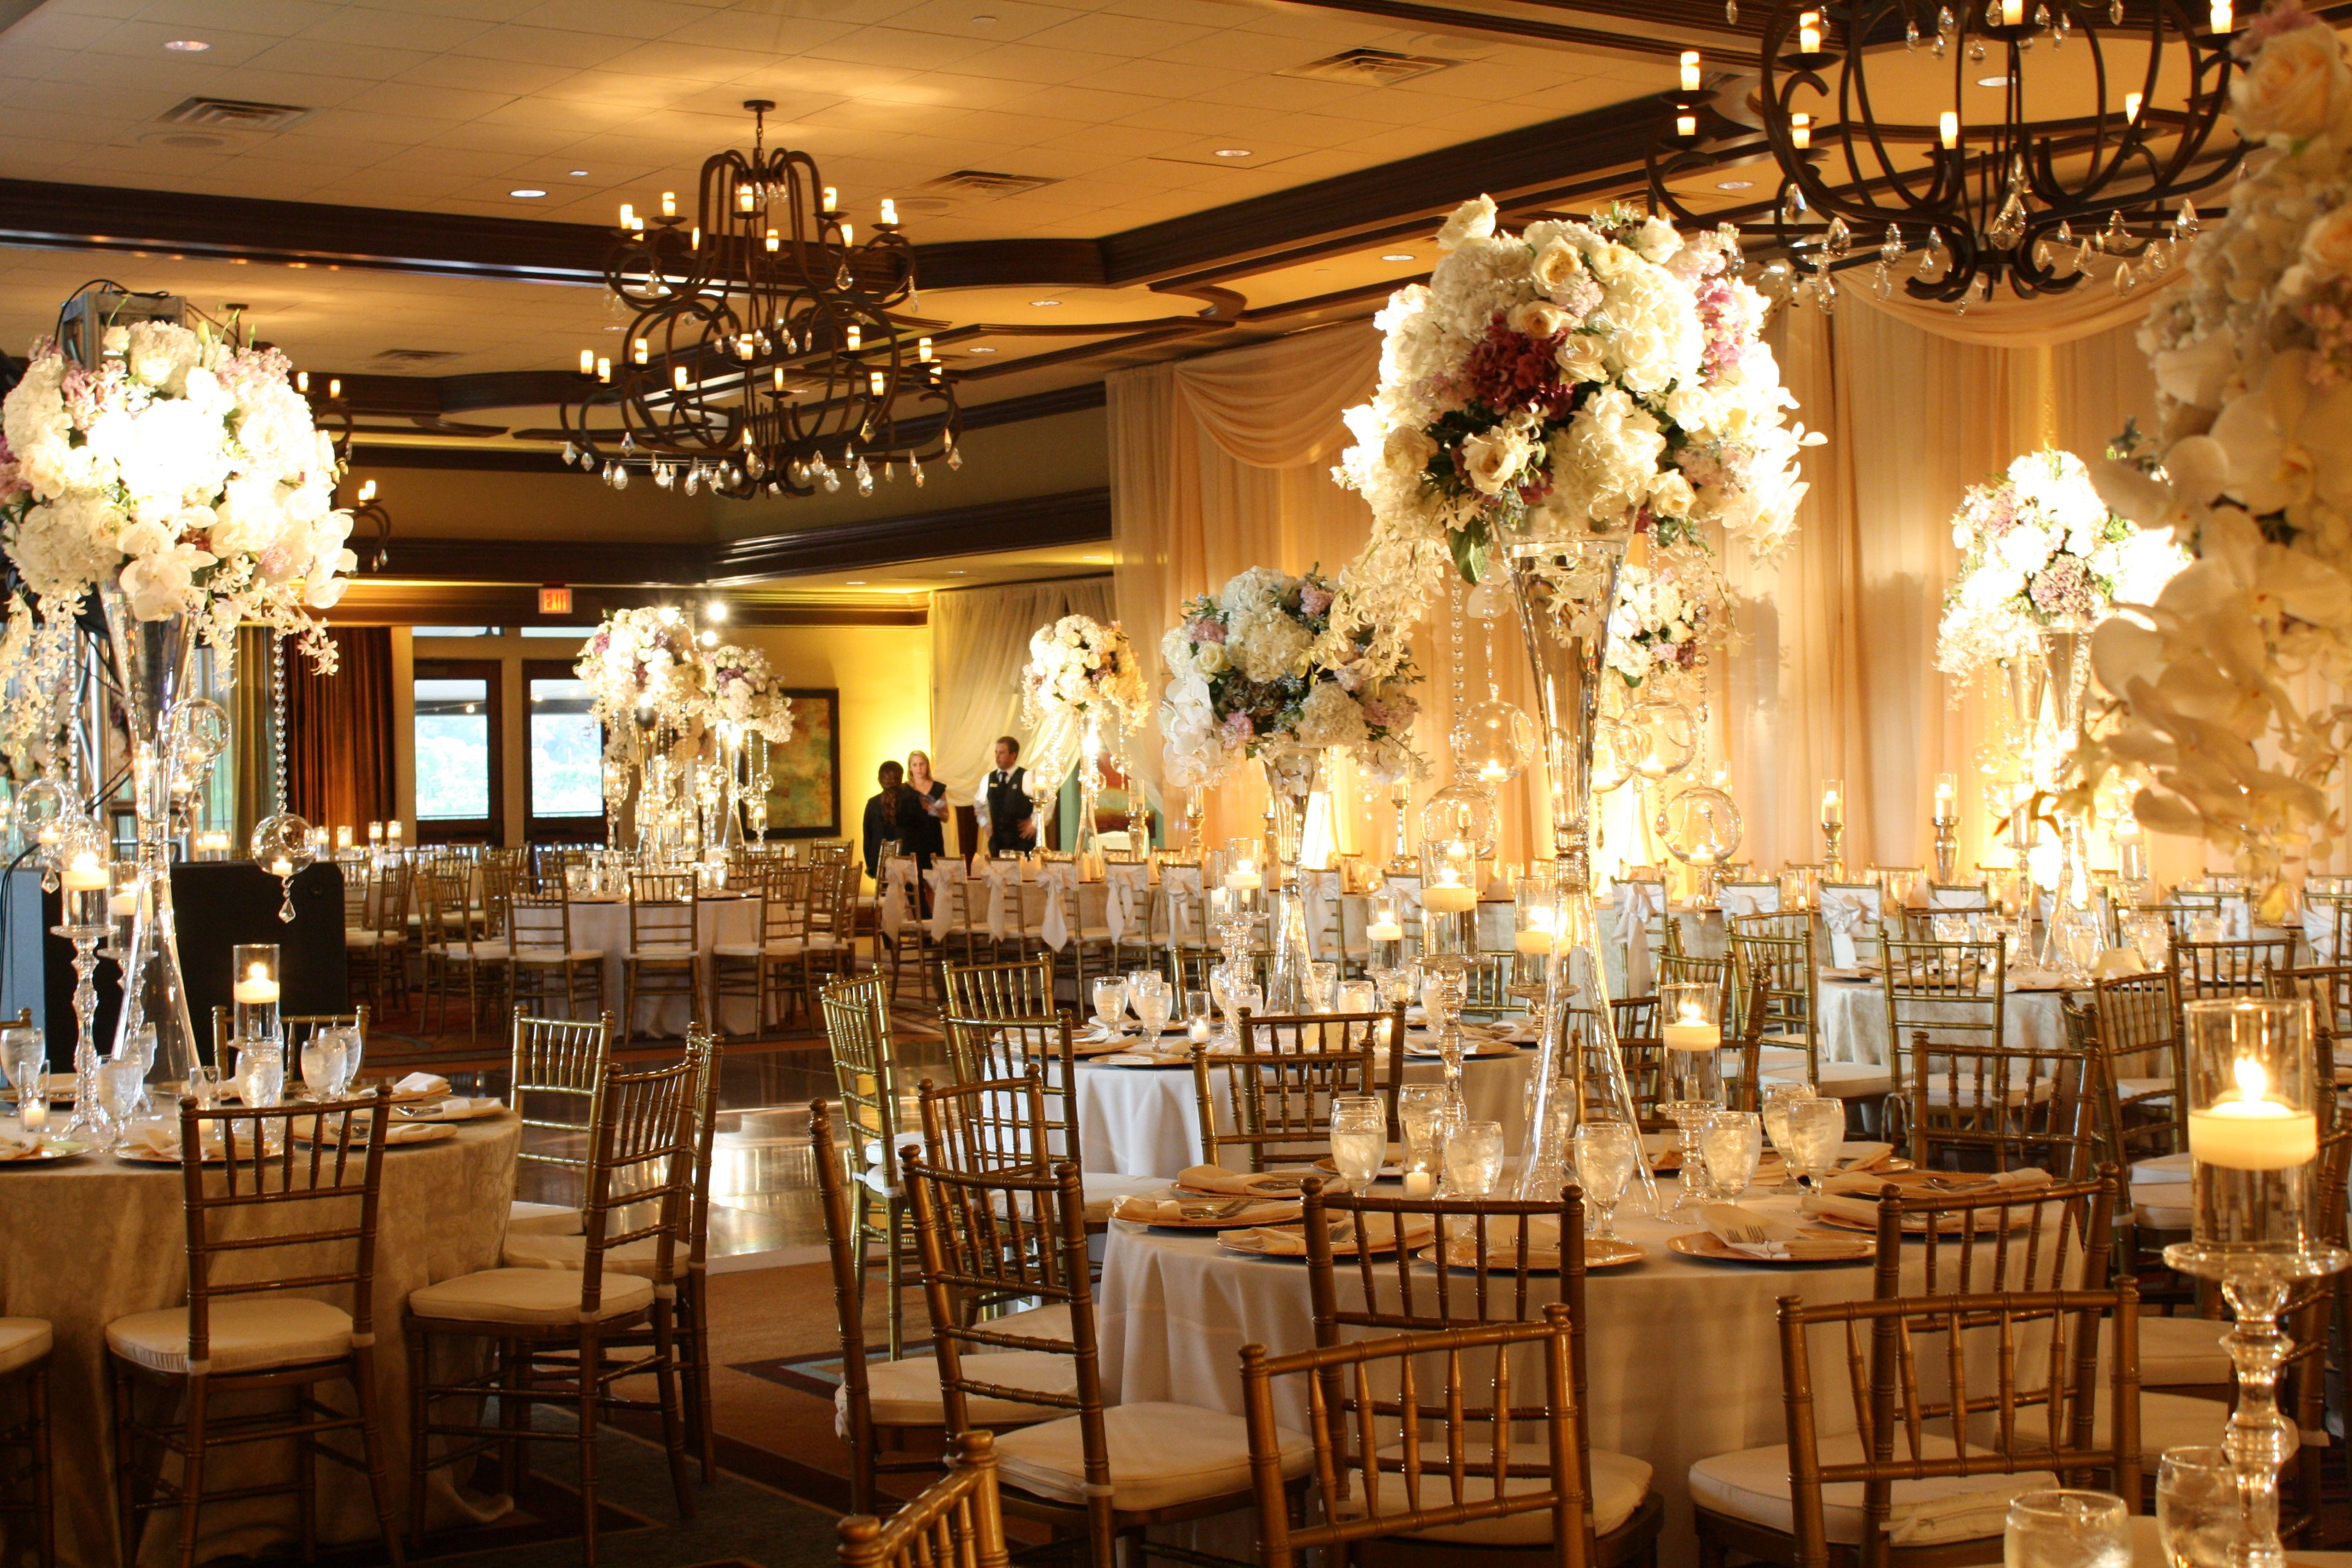 Reception at ridgewood country club my job at pendley party wedding venues in waco tx ridgewood country club waco junglespirit Image collections